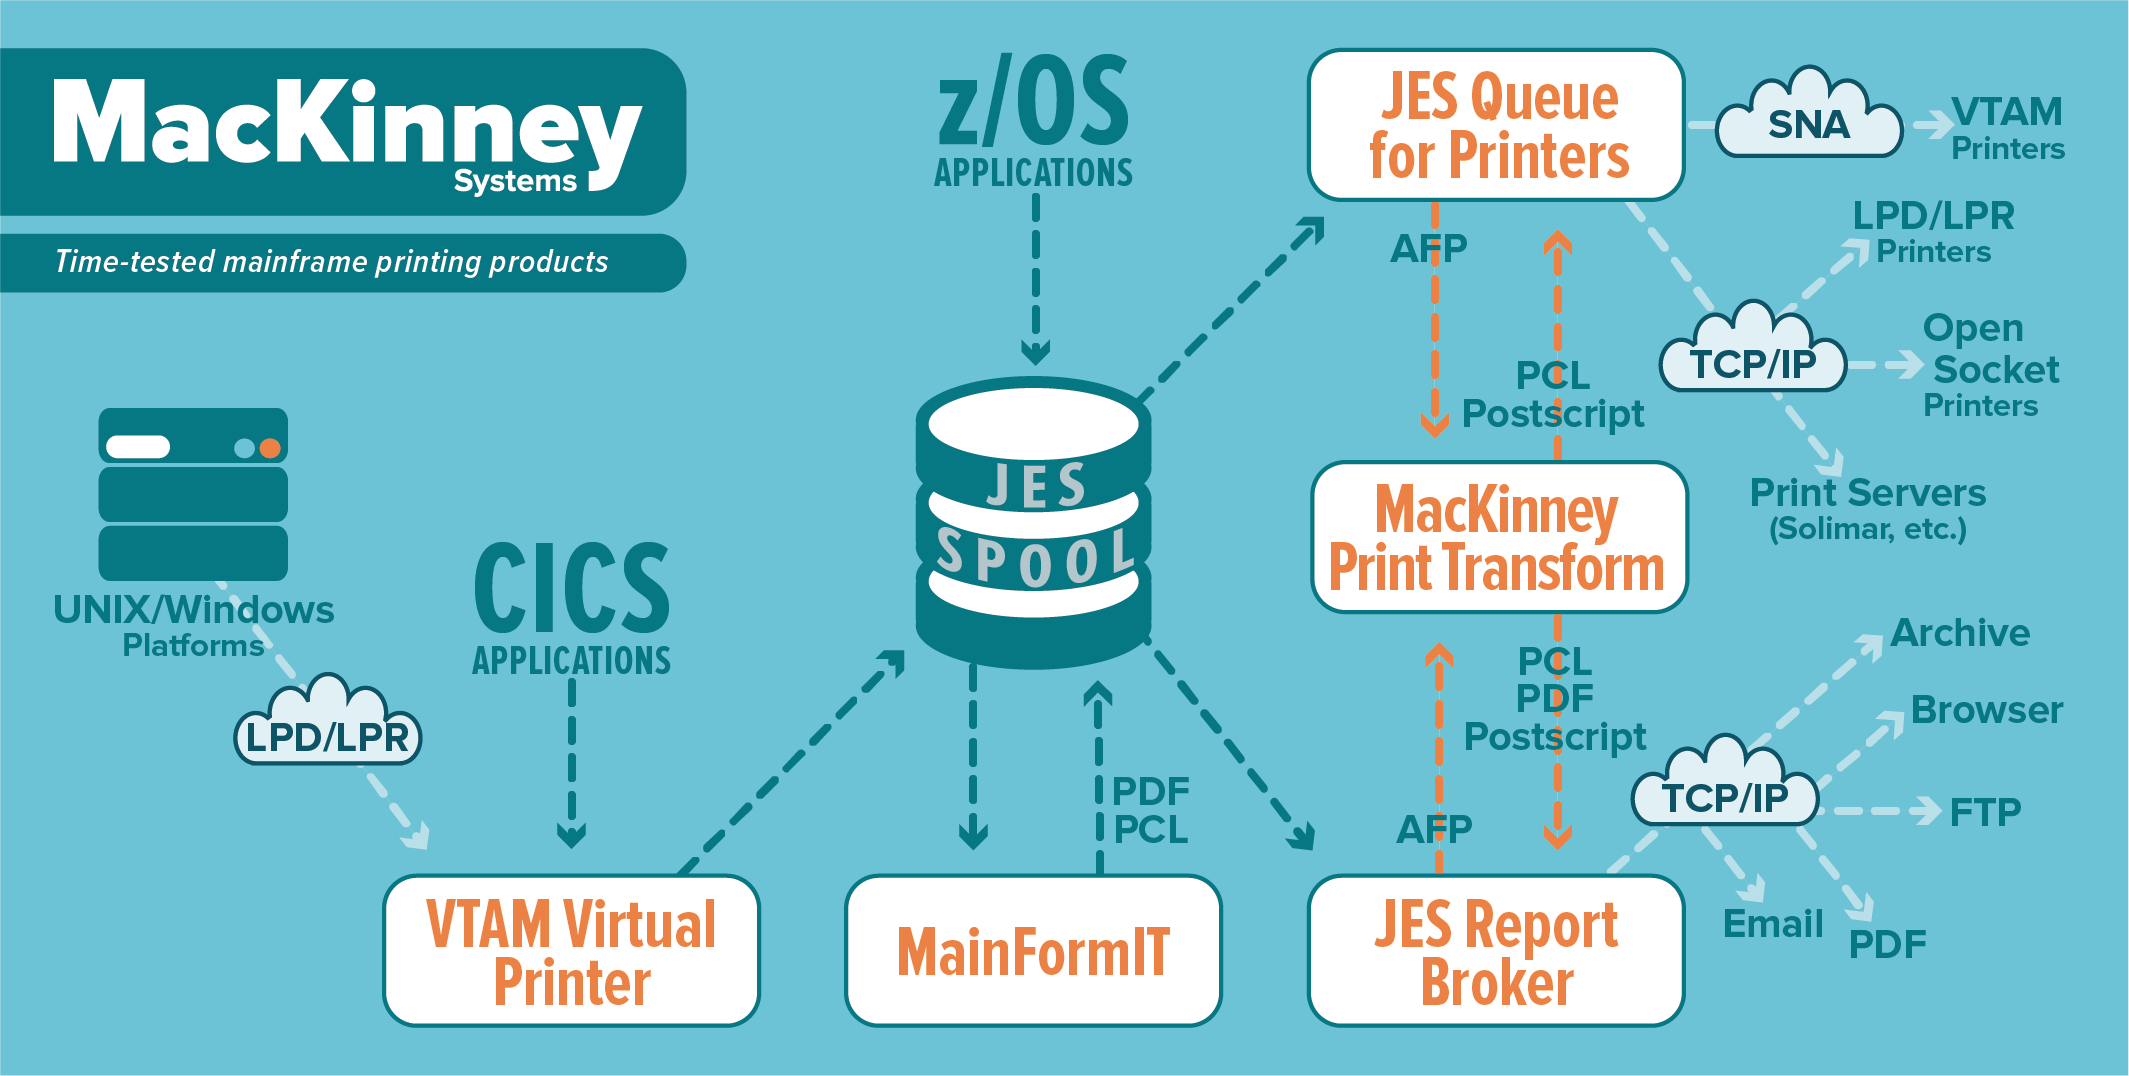 MacKinney Systems mainframe printing software